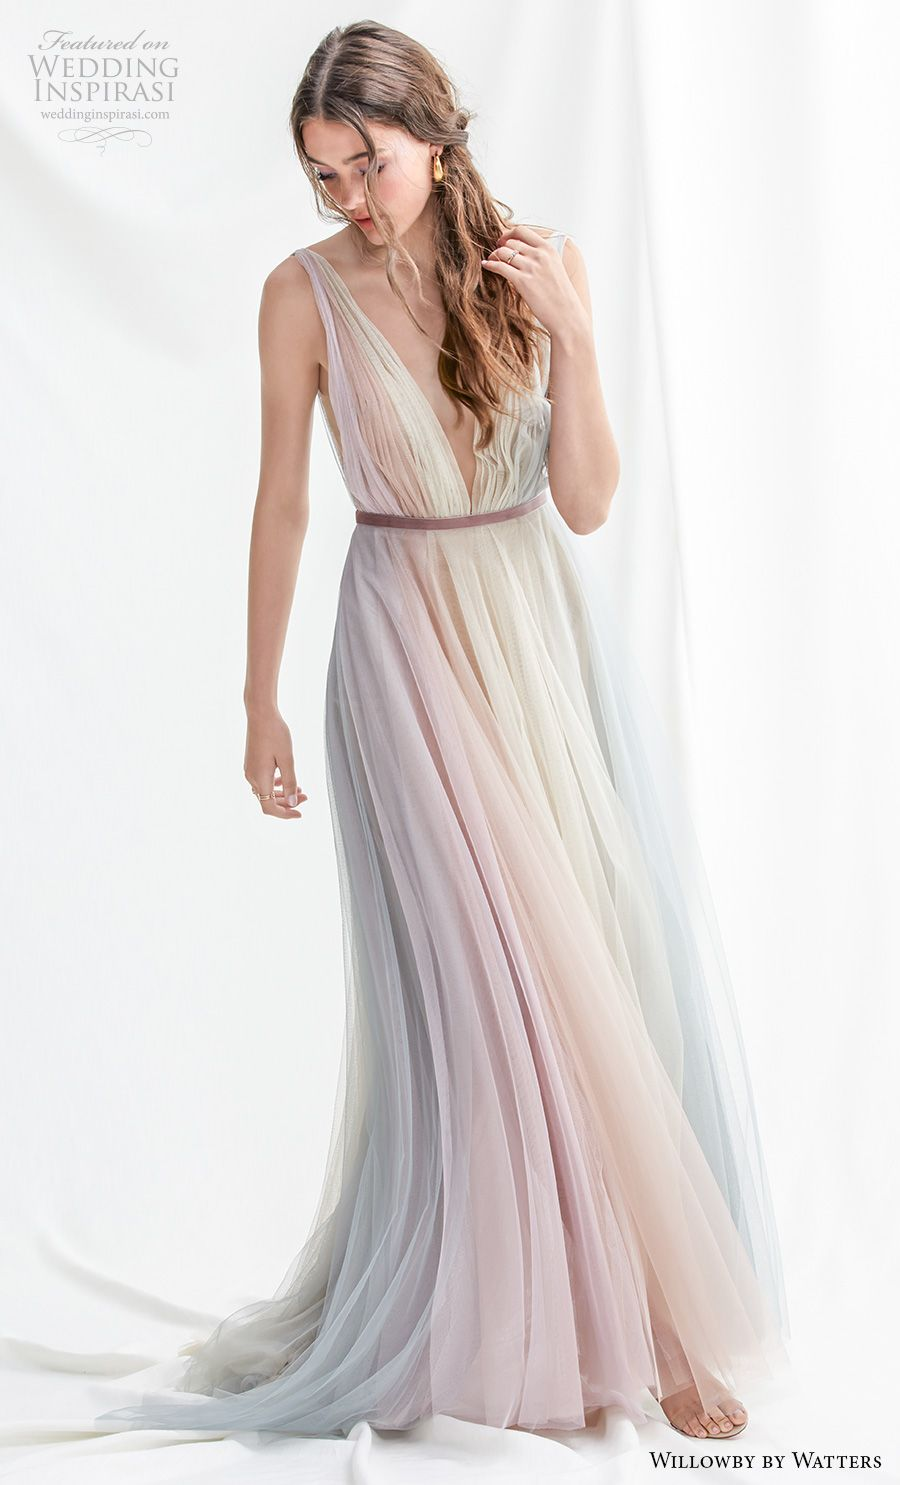 Willowby By Watters Spring 2019 Wedding Dresses Wedding Inspirasi Wedding Dresses Colored Wedding Dresses Pastel Wedding Dresses